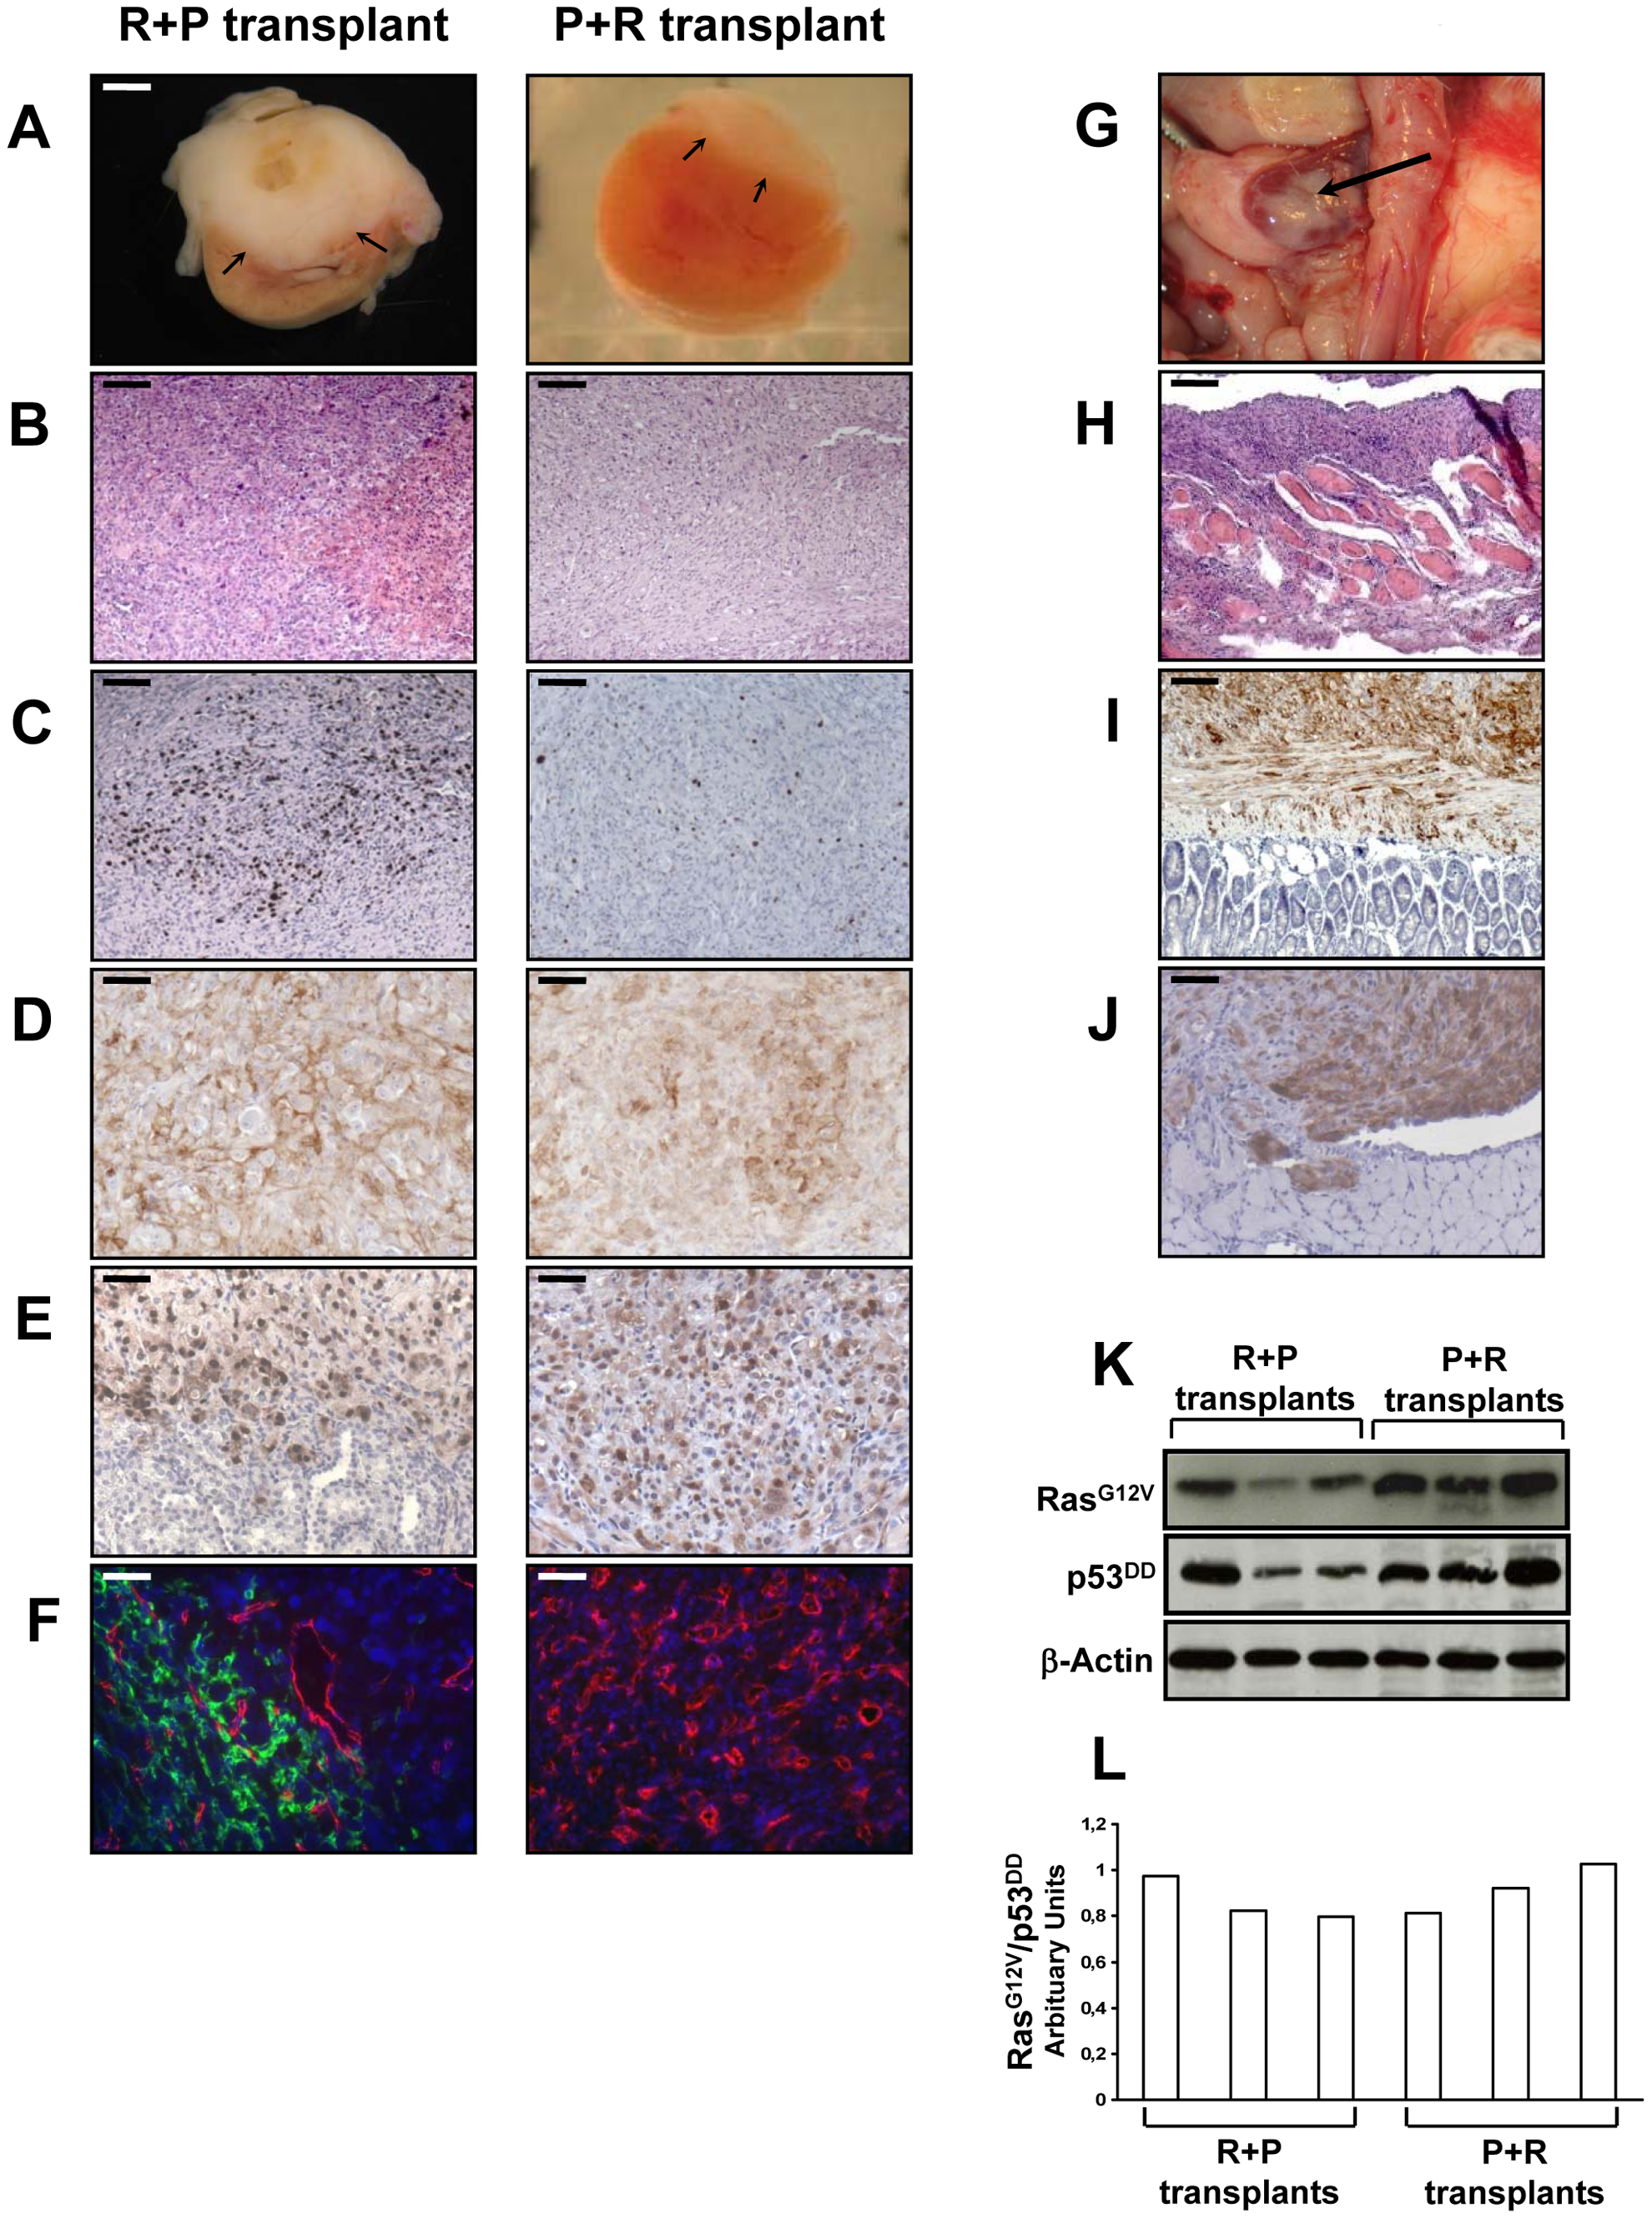 <i>In vivo</i> characterization of tissues formed at day 35 following the transplantation of R+P or P+R cells.